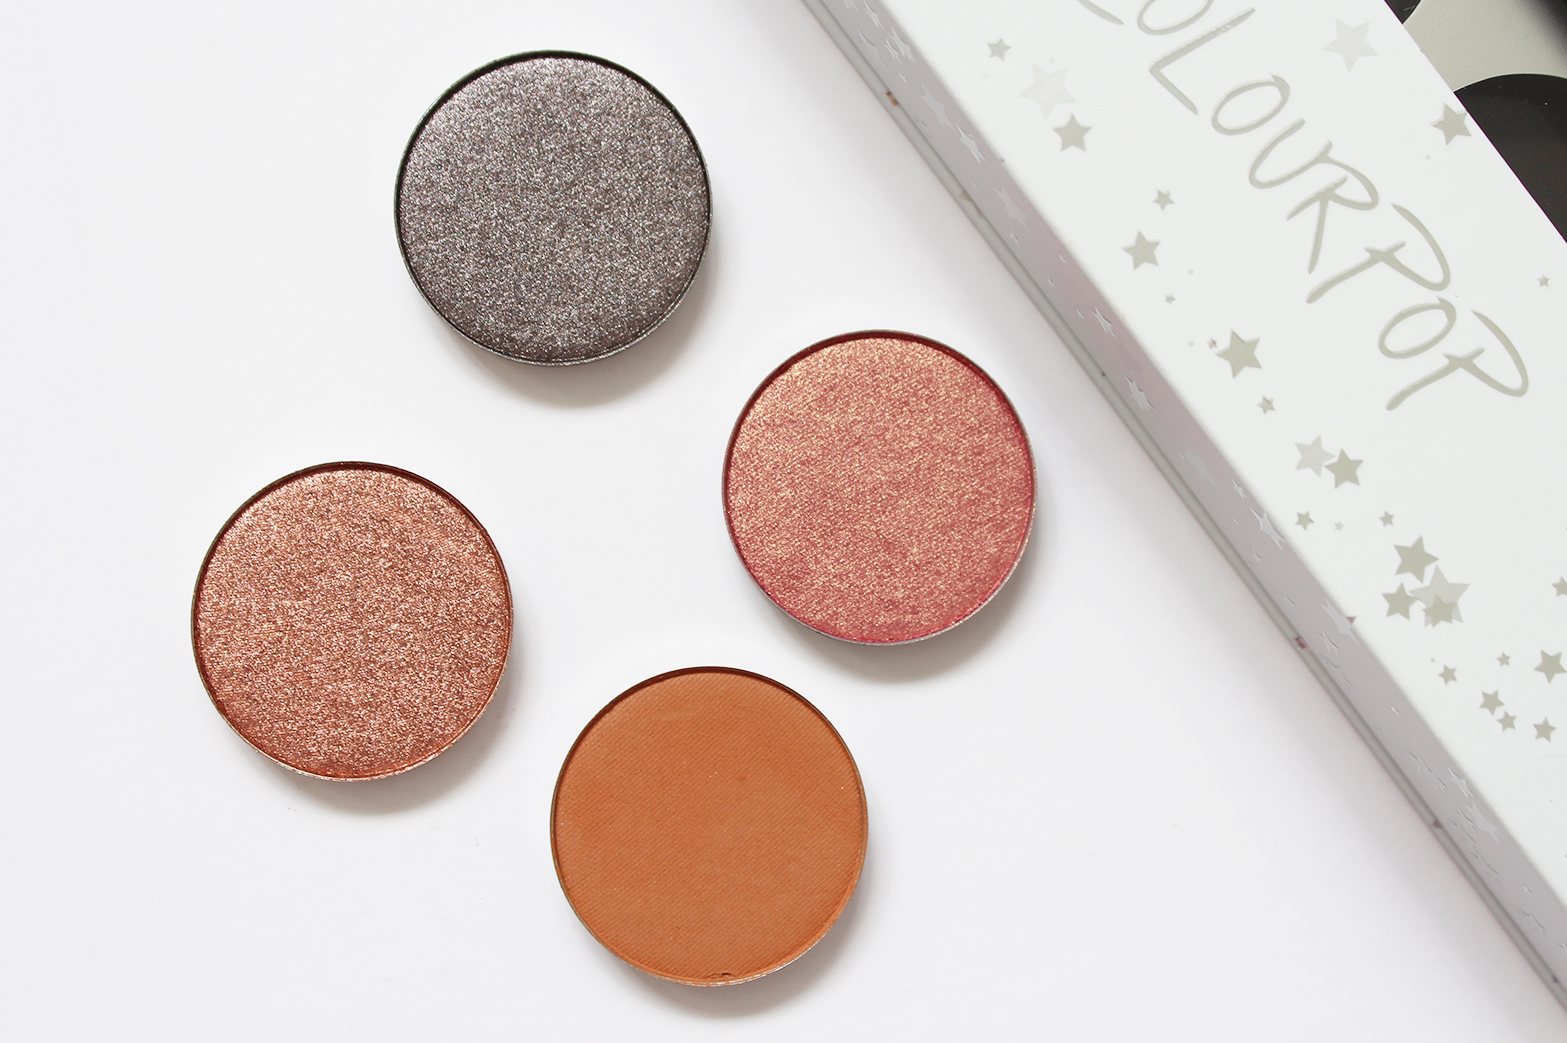 COLOURPOP COSMETICS | Brand New Pressed Shadows - Review + Swatches - CassandraMyee